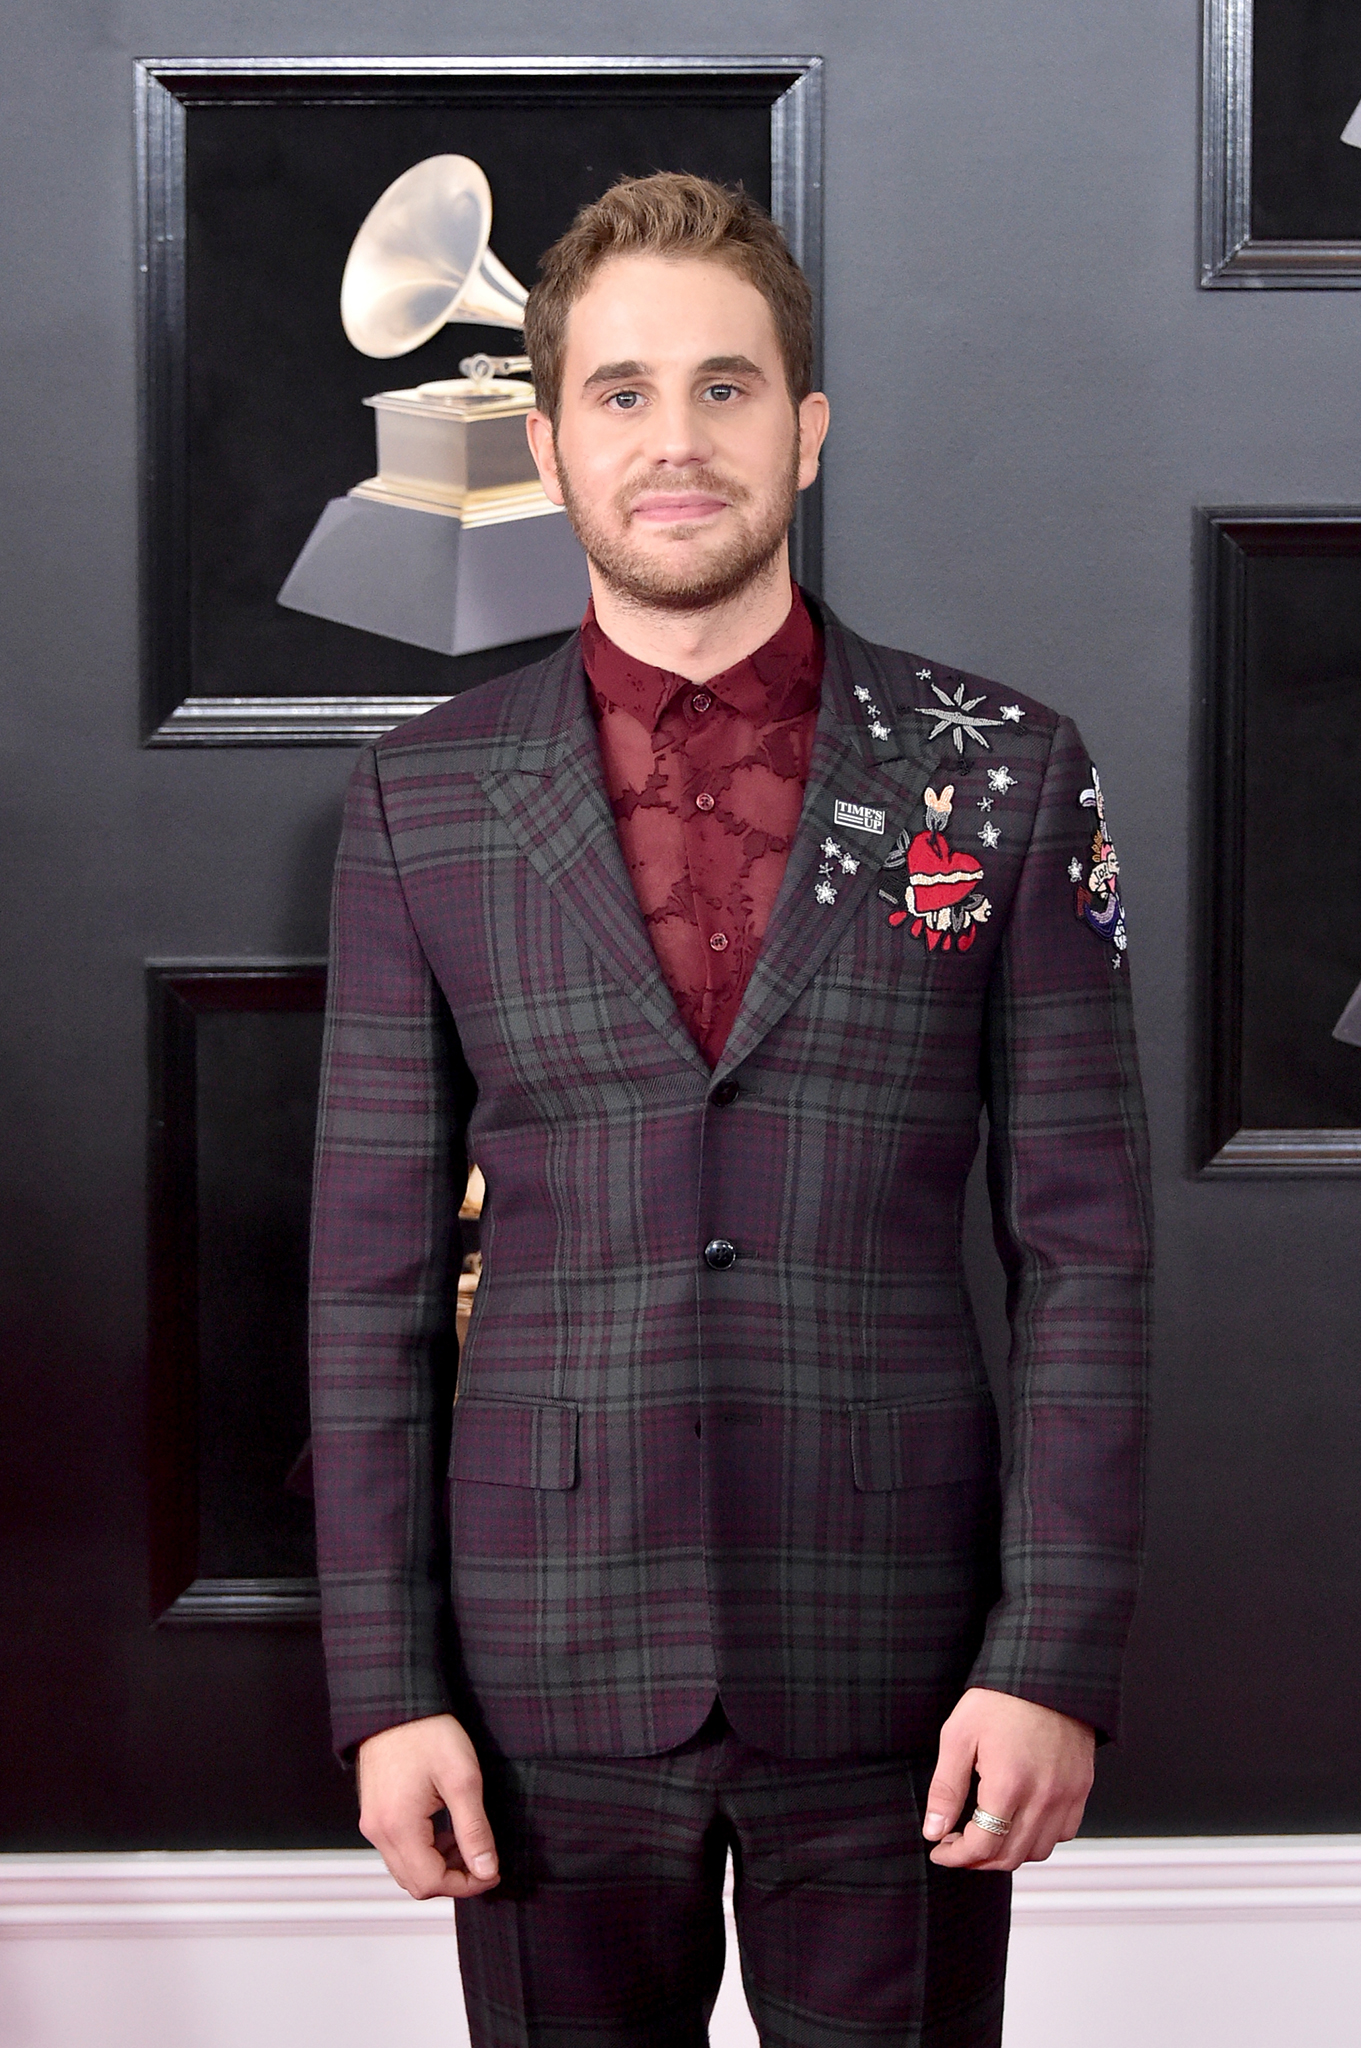 Actor Ben Platt attends the 60th Annual GRAMMY Awards at Madison Square Garden on January 28, 2018 in New York City.